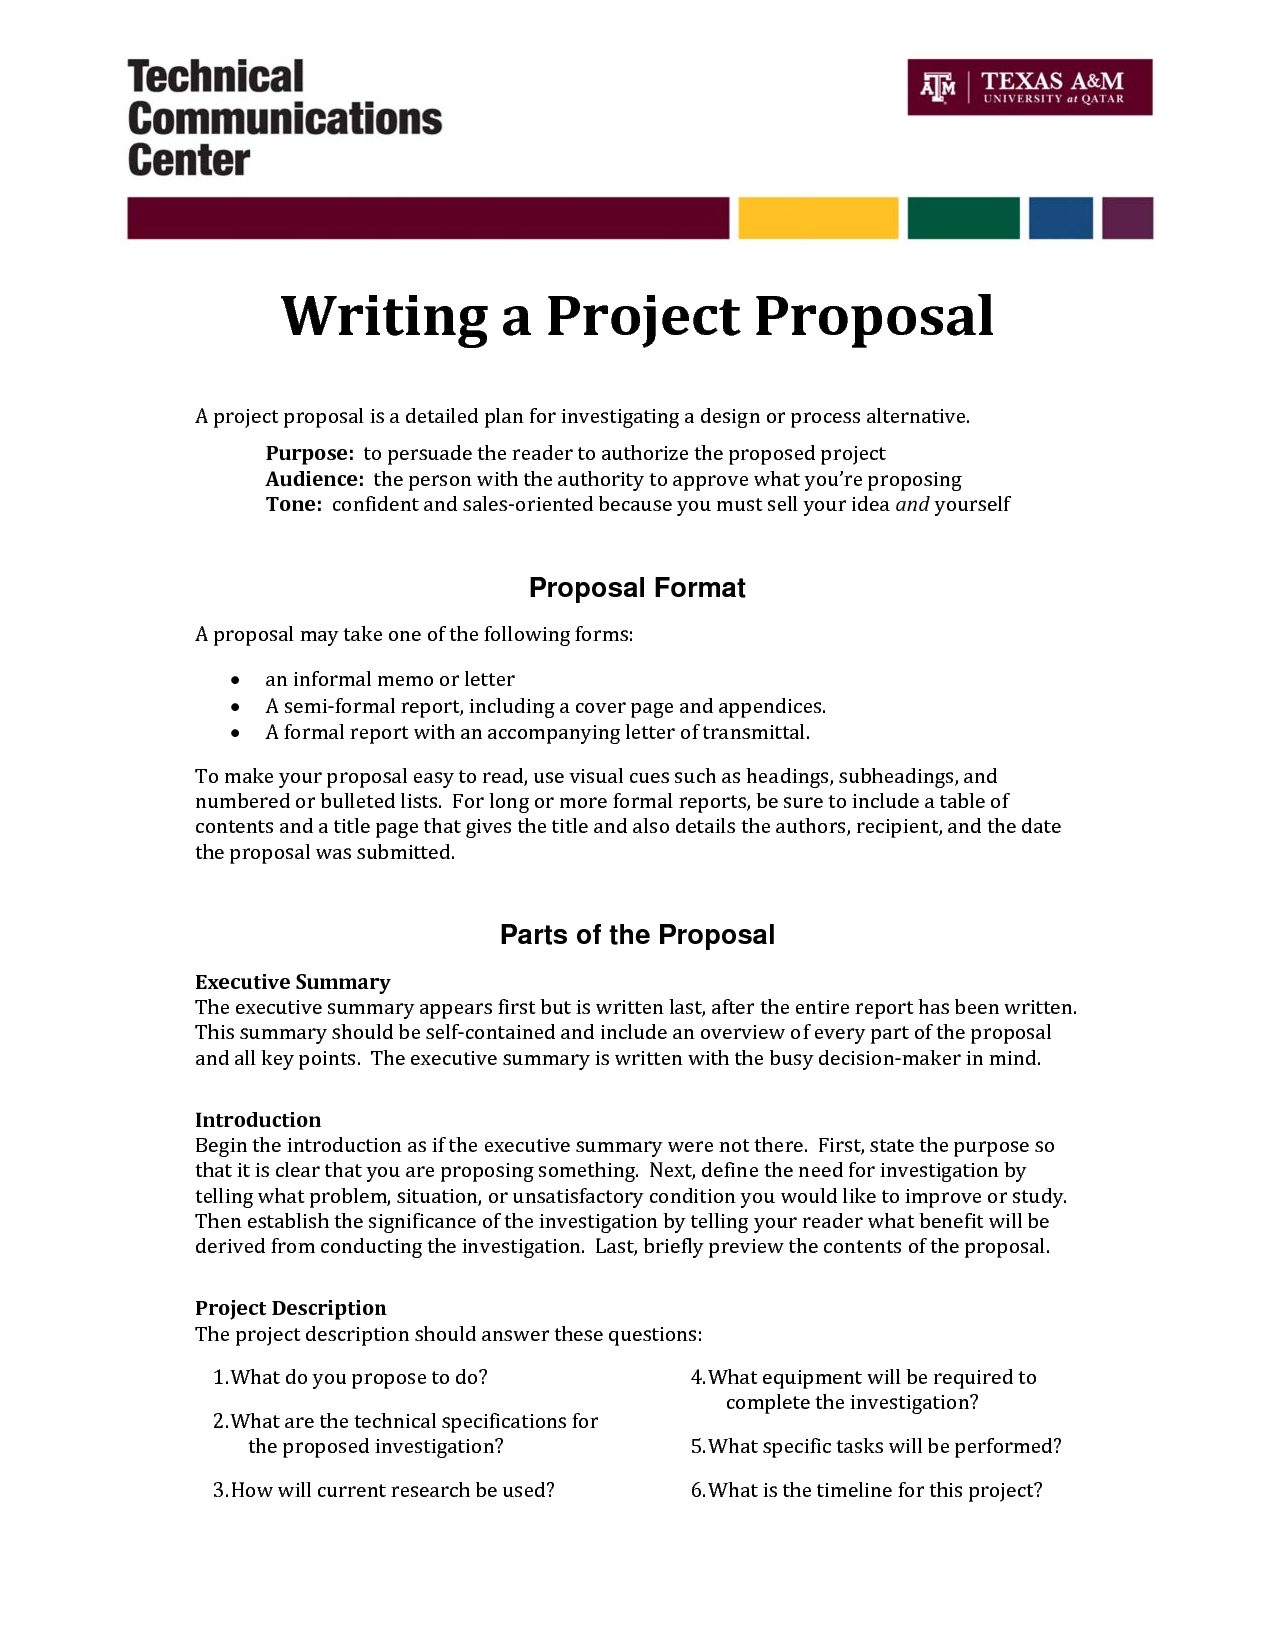 Merveilleux Informal Proposal Letter Example | Writing A Project Proposal A Project  Proposal Is A Detailed